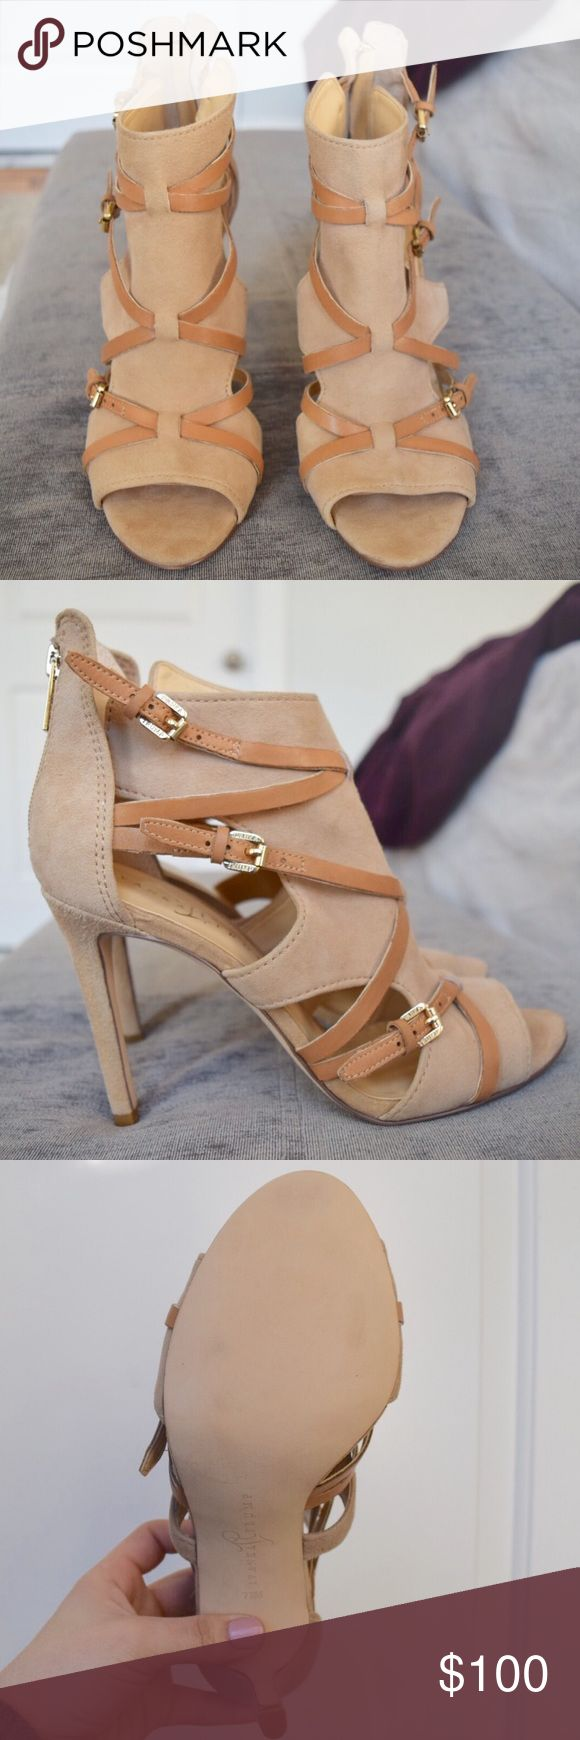 🆕 Ivanka Trump Strap Heels Gorgeous strapped nude heels. Material is suede. Three buckles on the outter foot. Zip up back for easy on and off. Extremely comfortable. No tags are included, but never worn and in brand new condition. Ivanka Trump Shoes Heels